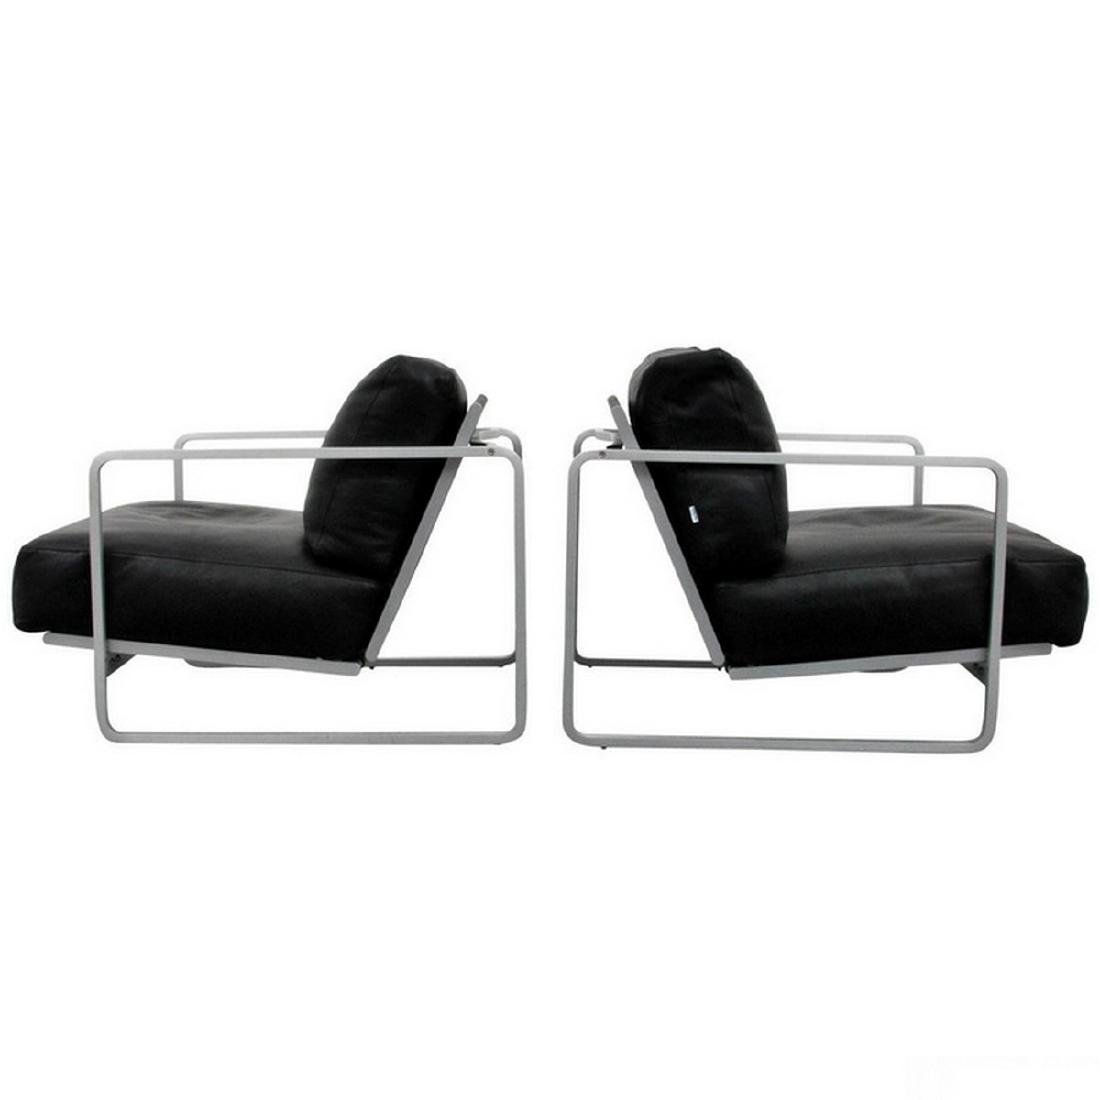 Pair of Haberli & Marchand Lounge Chairs